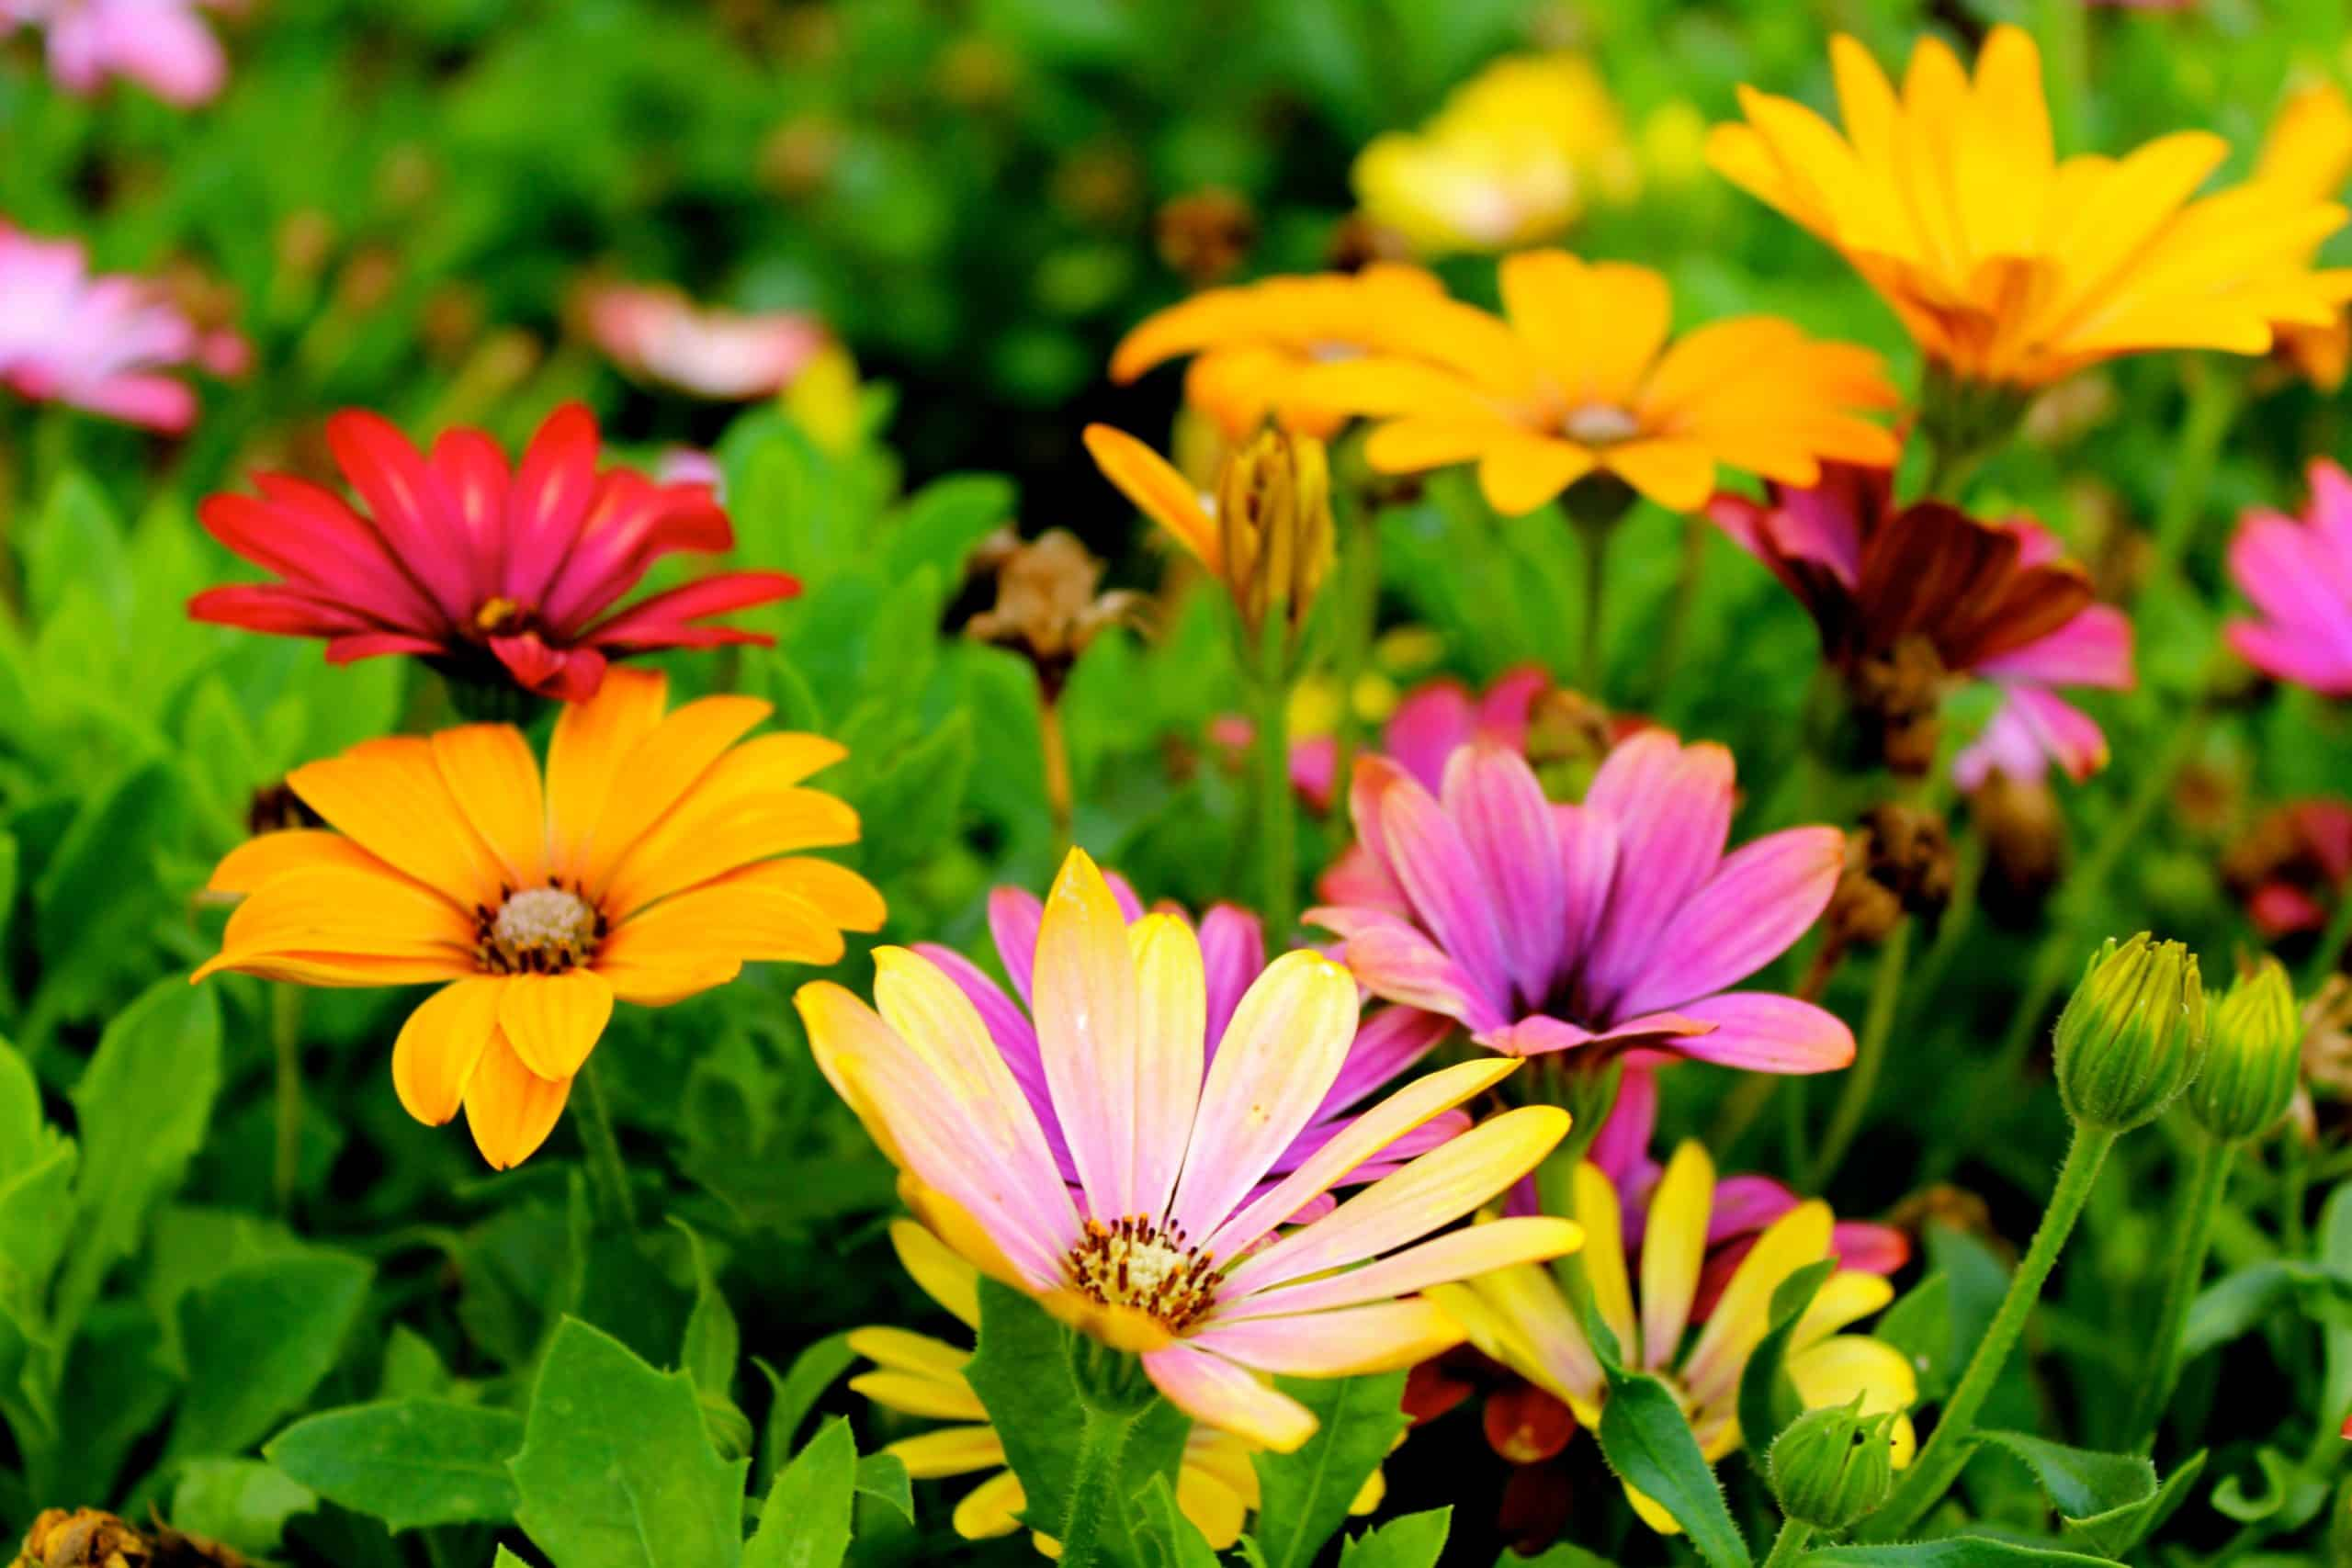 What Kind Of Flower Is The Best For A Garden?